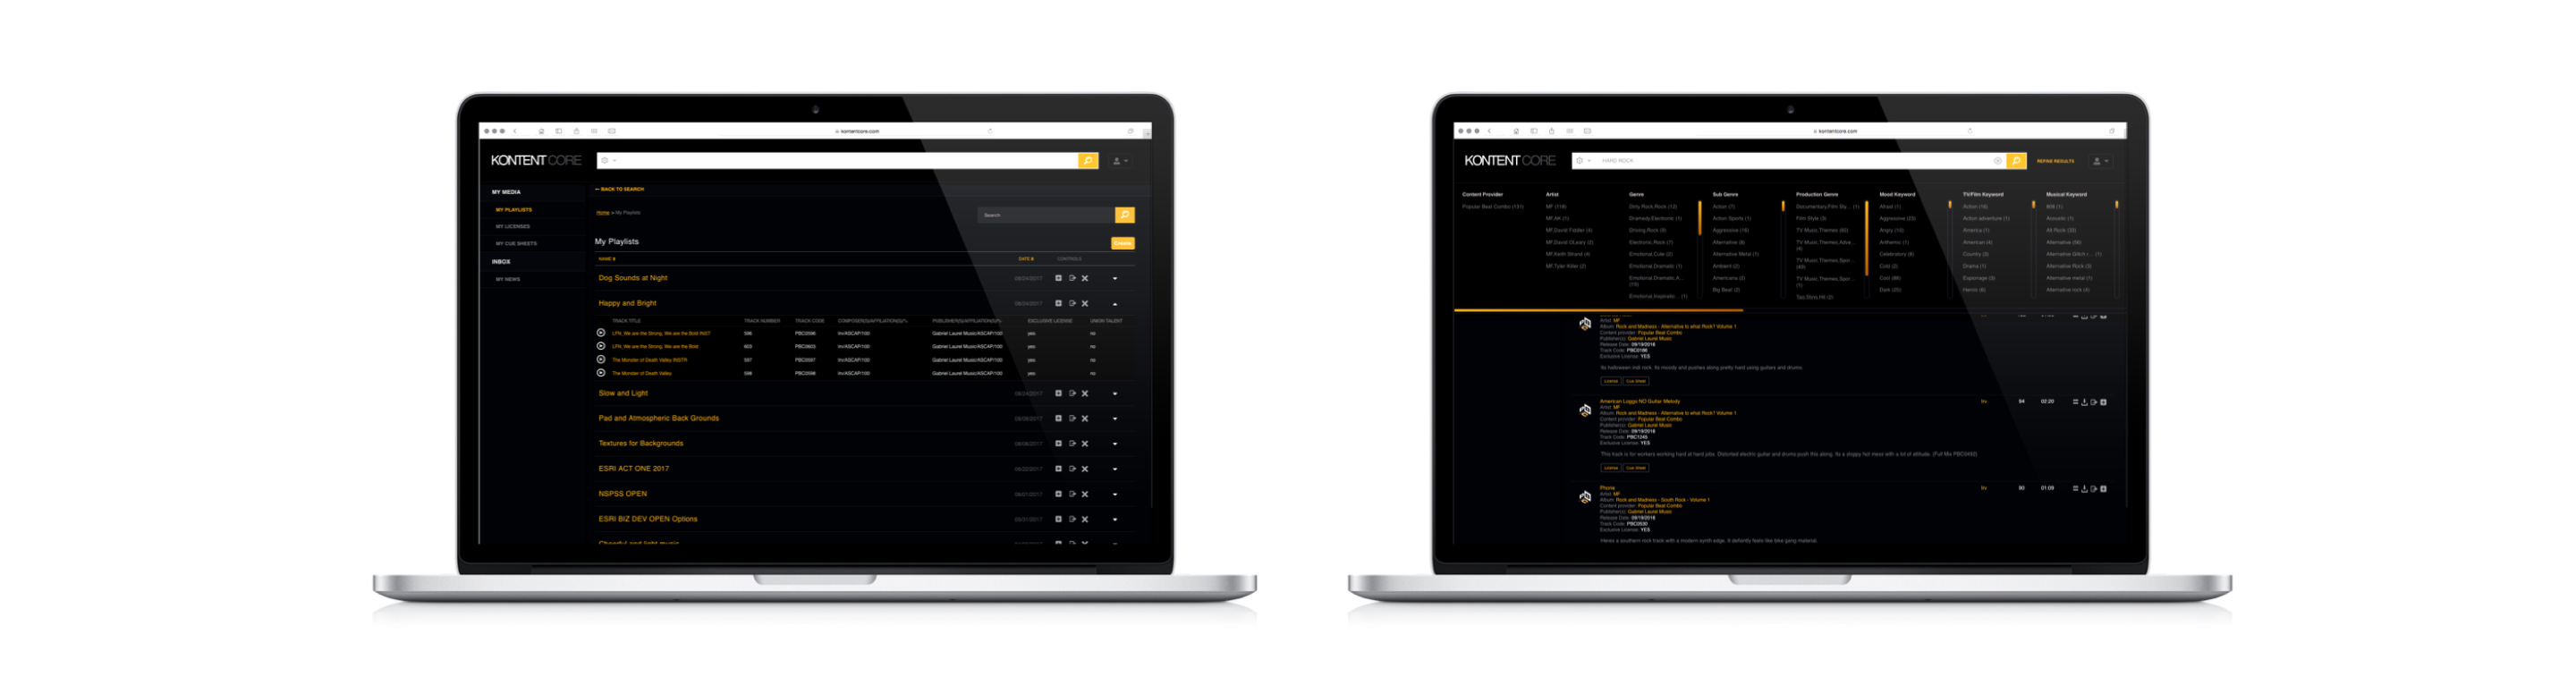 Kontent Core user interface, Kontent Core music discovery